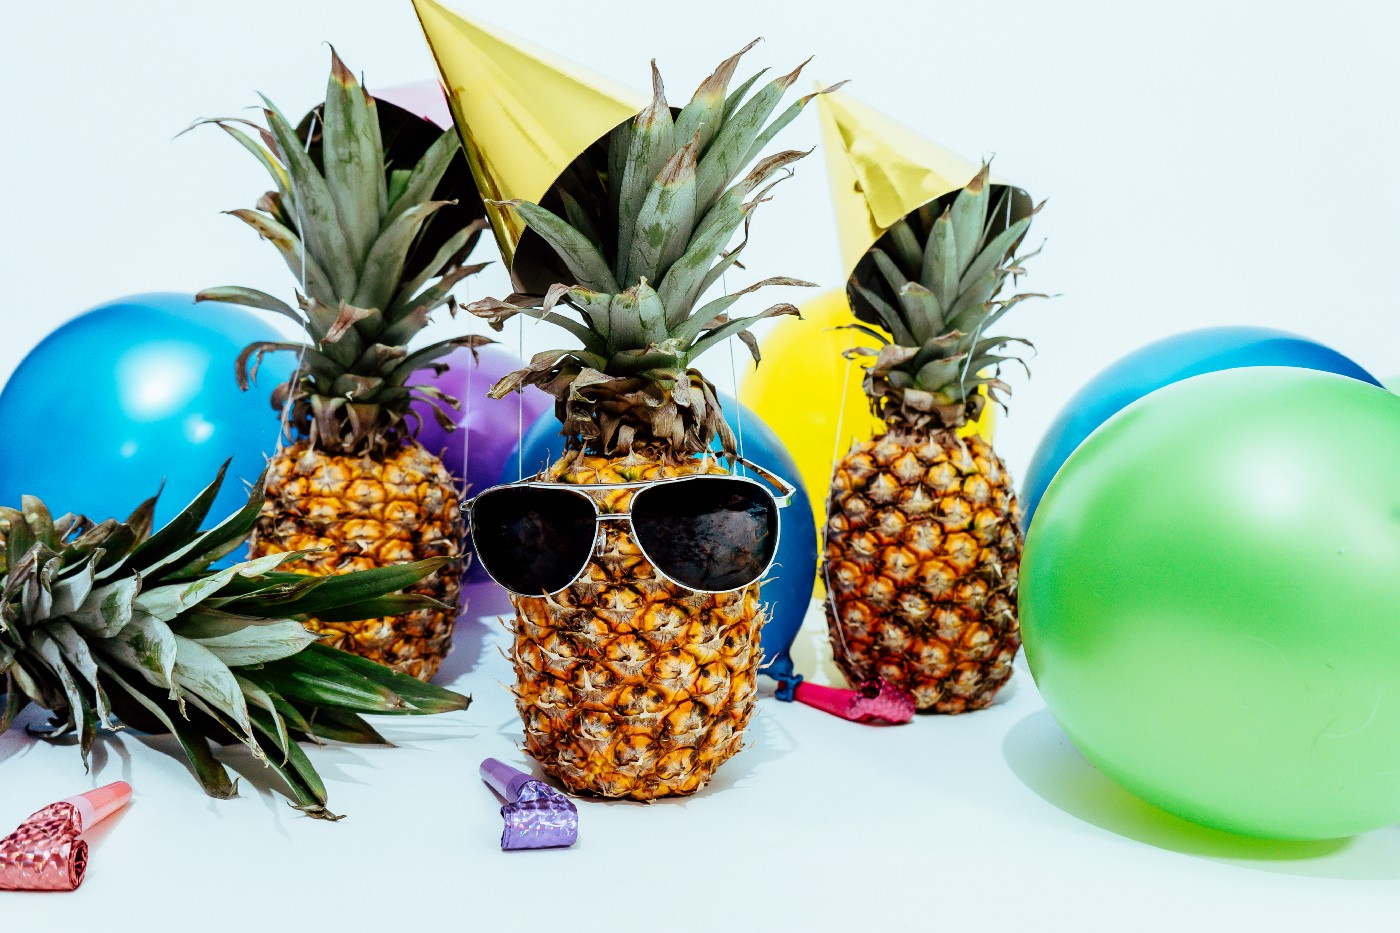 Pineapple with sunglasses on